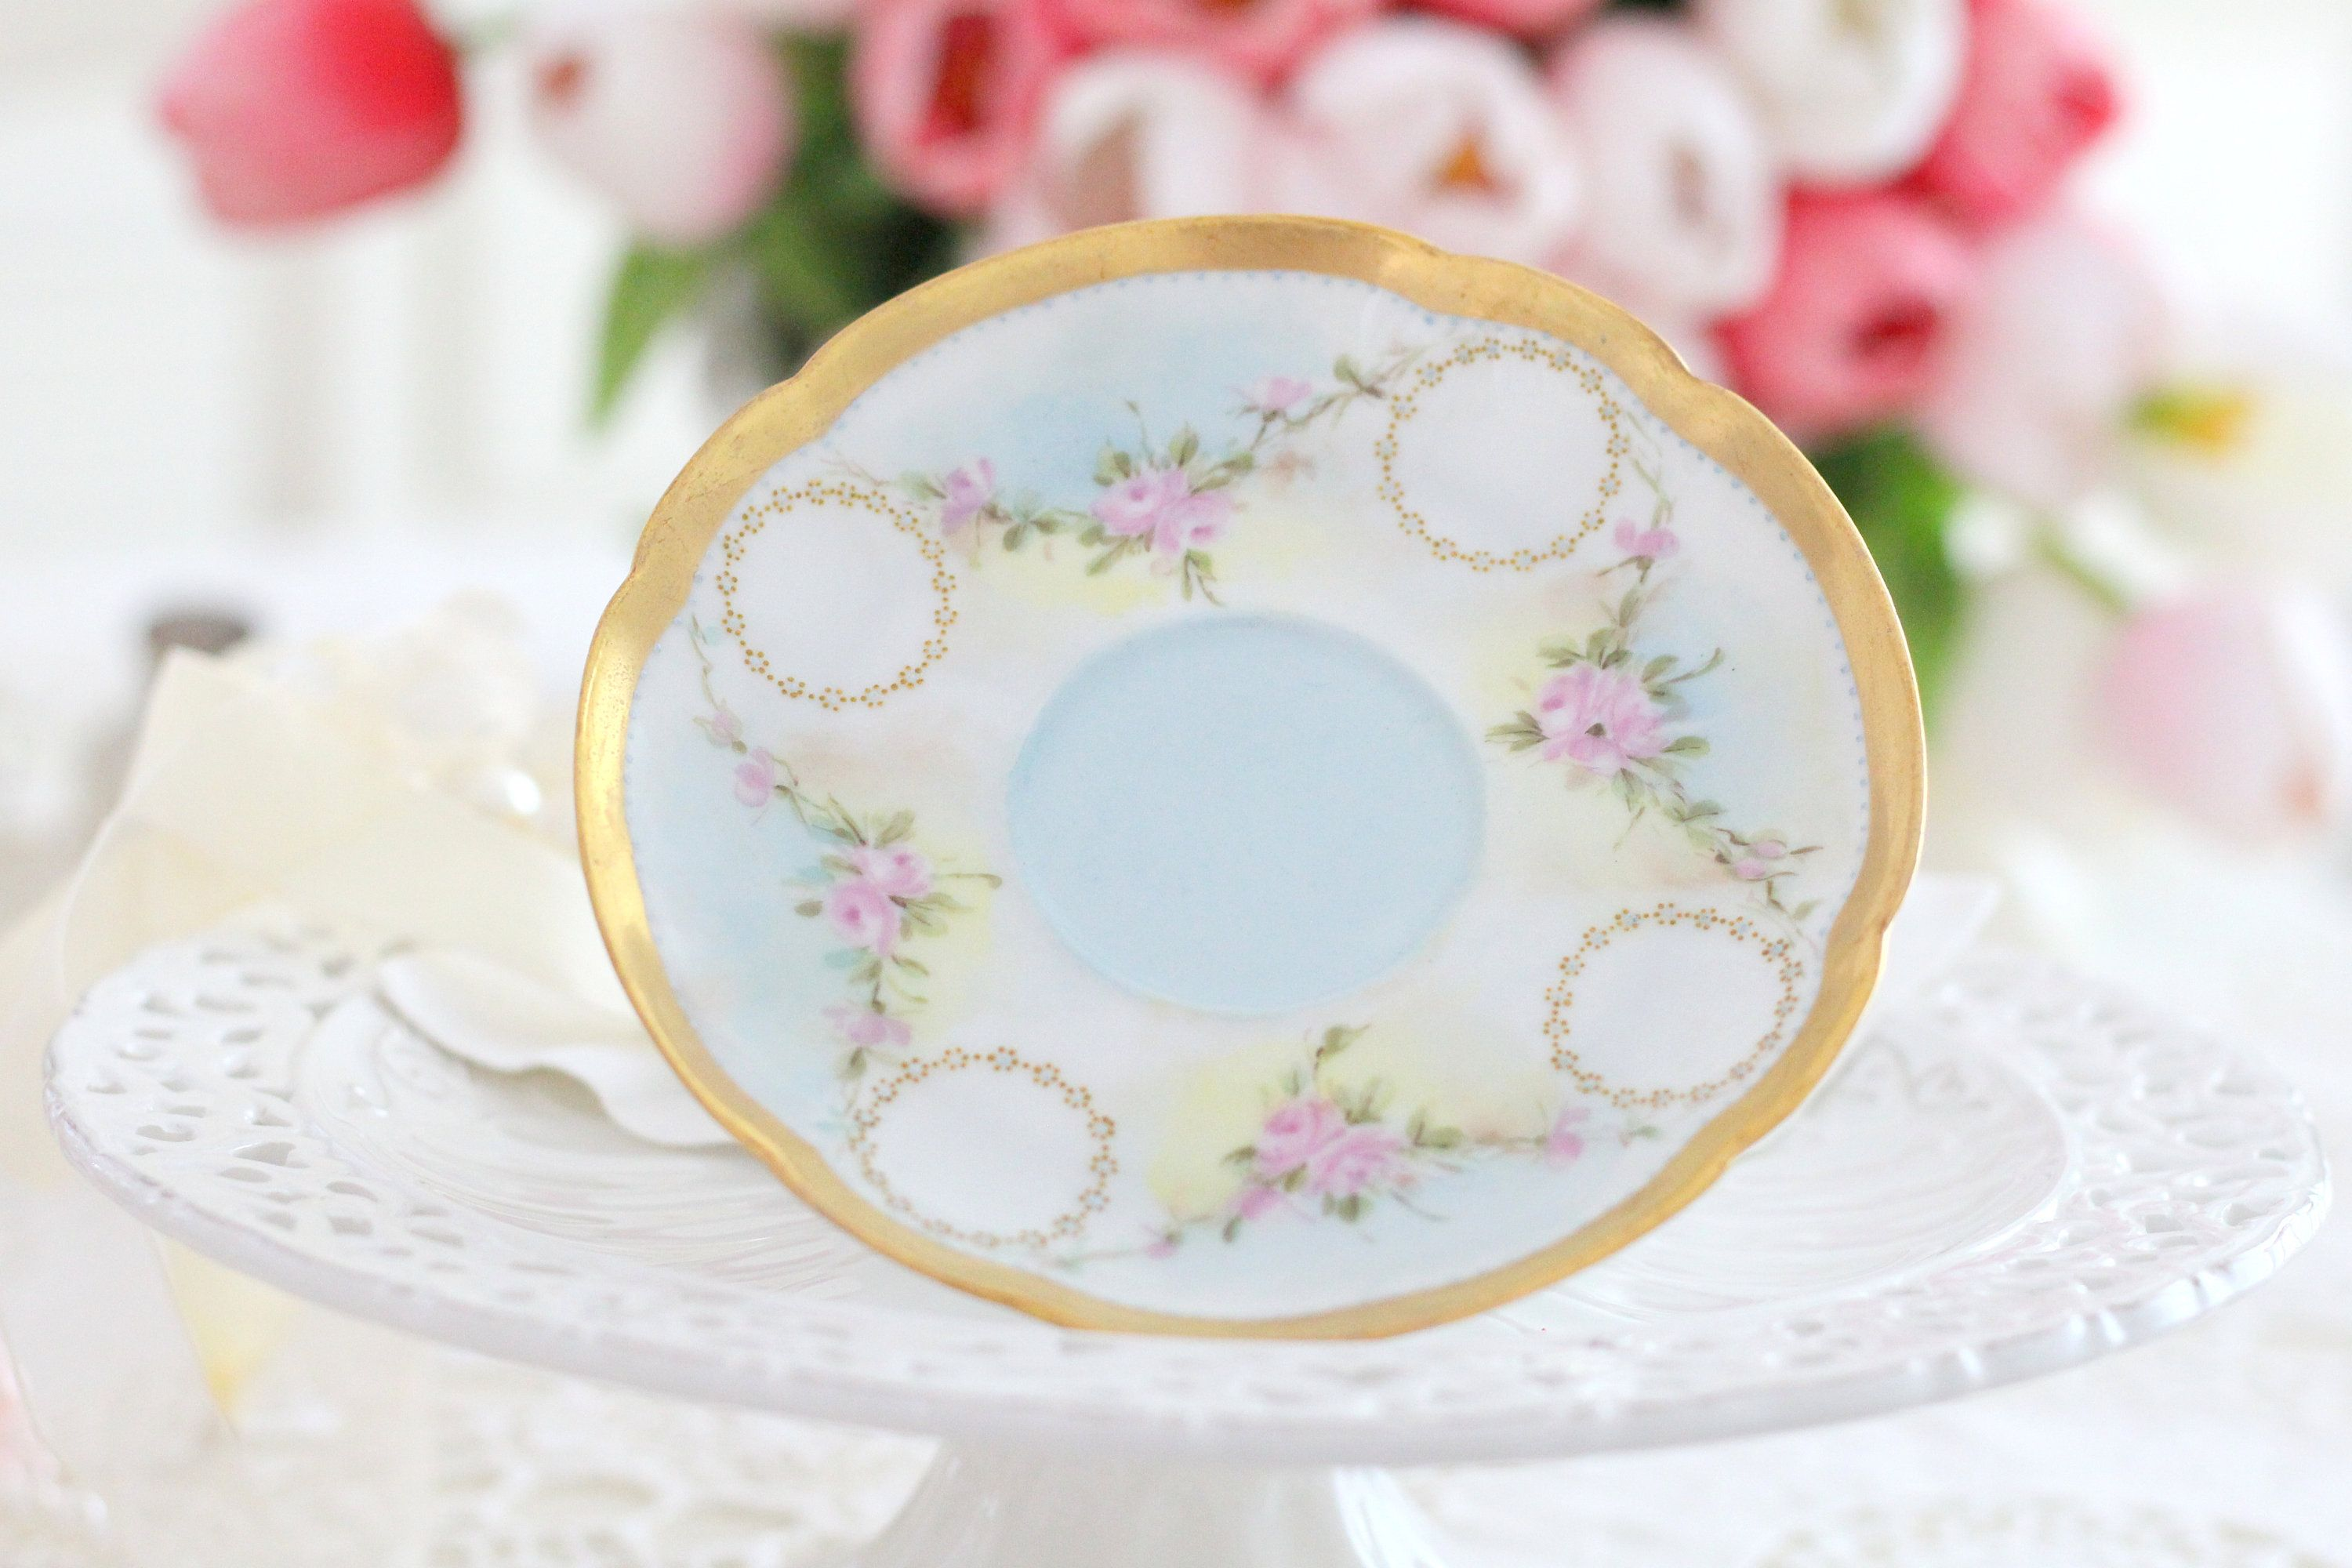 France Limoges ANTIQUE PLATE by Theodore Haviland Replacement China ca 1904-1920s